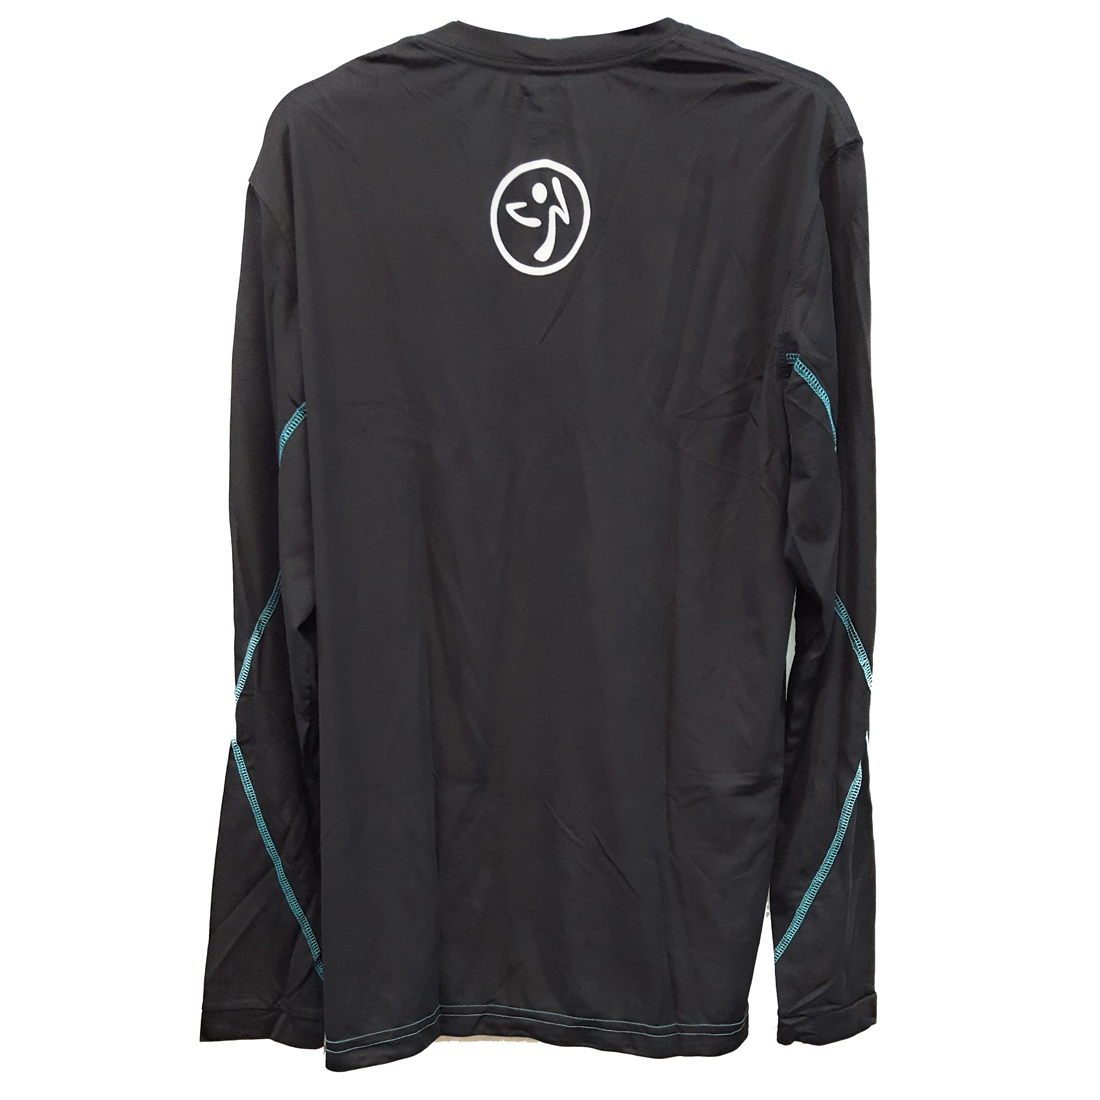 Zumba-Fitness-Men-039-s-Logo-Long-Sleeve-Shirt thumbnail 10